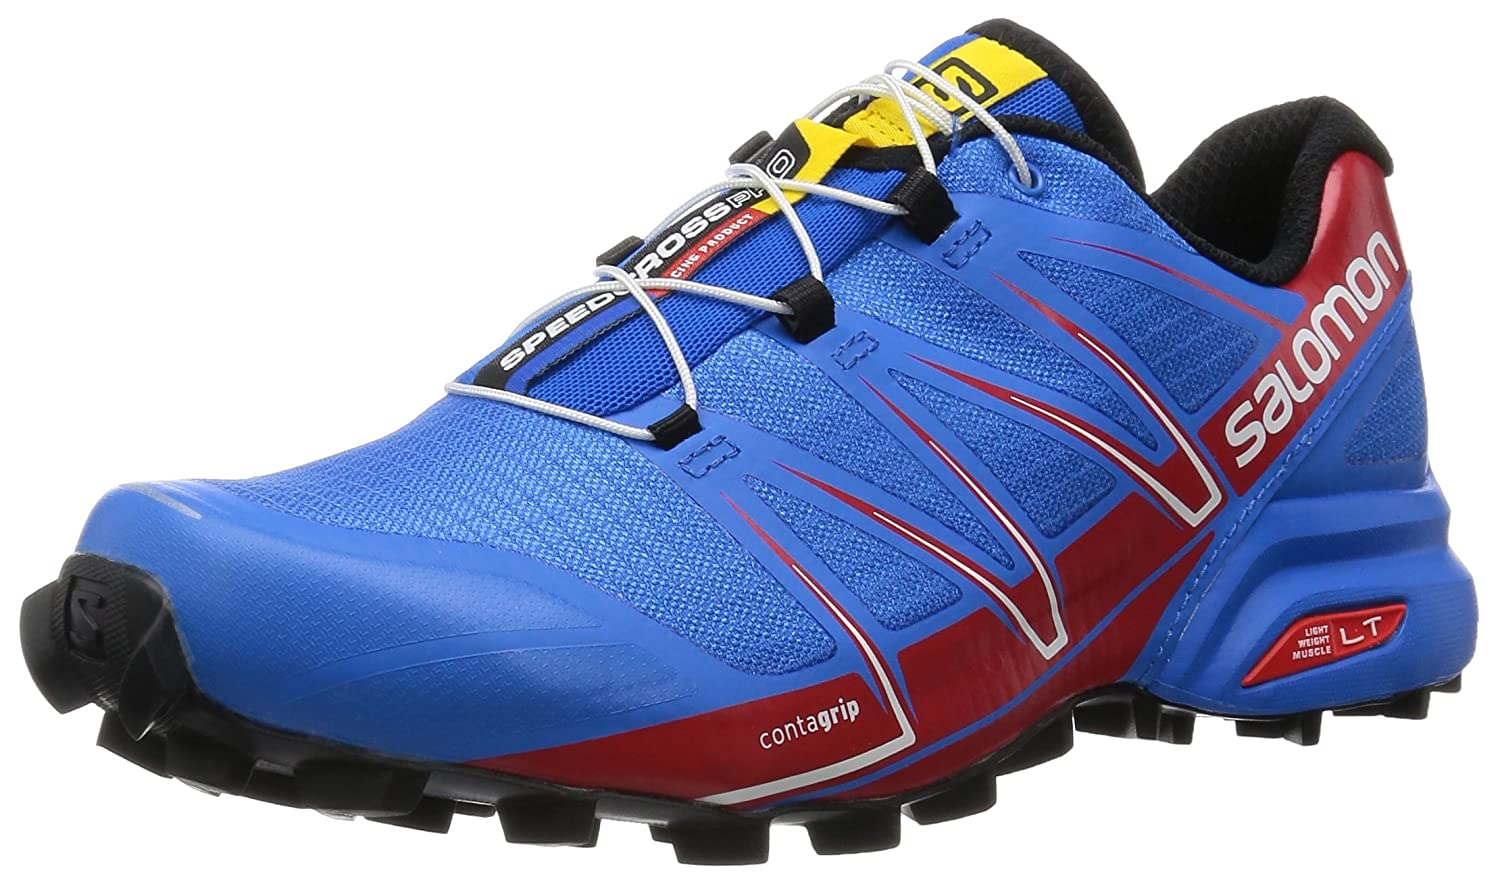 [サロモン] SALOMON トレイルランニングシューズ SPEEDCROSS PRO B00ZLMWS1G 12 F(M) UK / 12.5 D(M) US Bright Blue/Radiant Red/Black